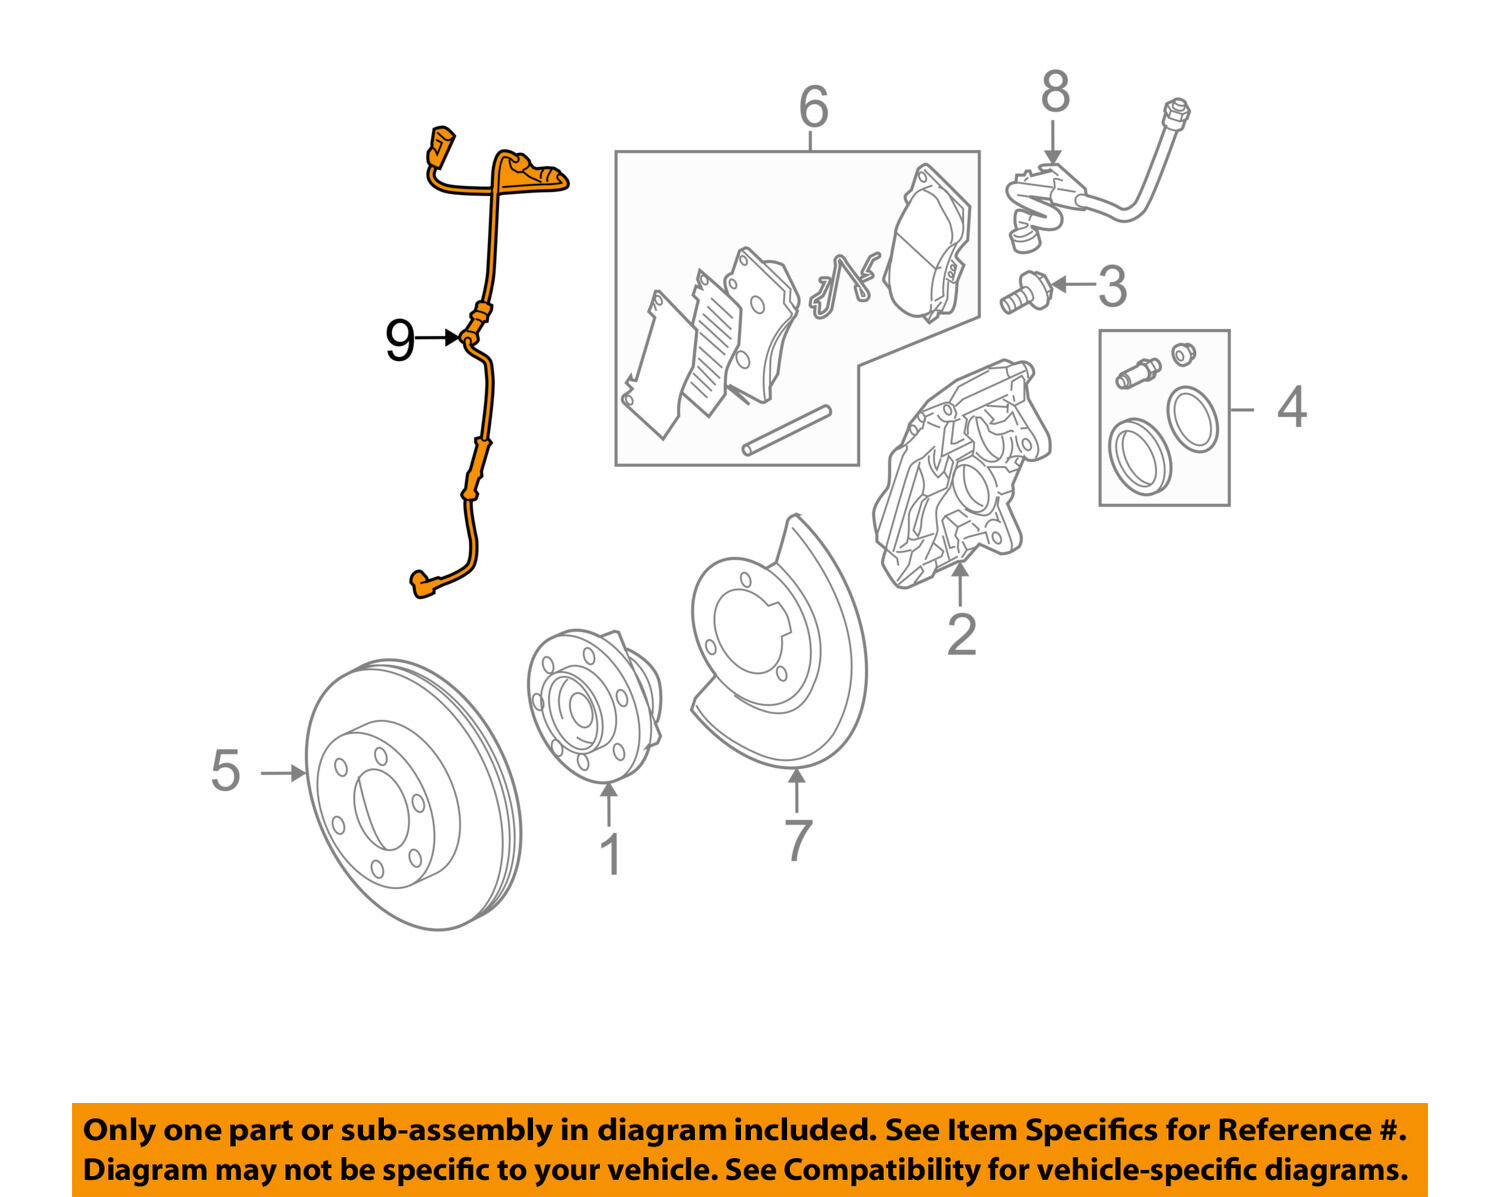 Hummer Gm Oem 06 08 H3 Abs Anti Lock Brakes Front Speed Sensor Diagram 1 Of 2free Shipping